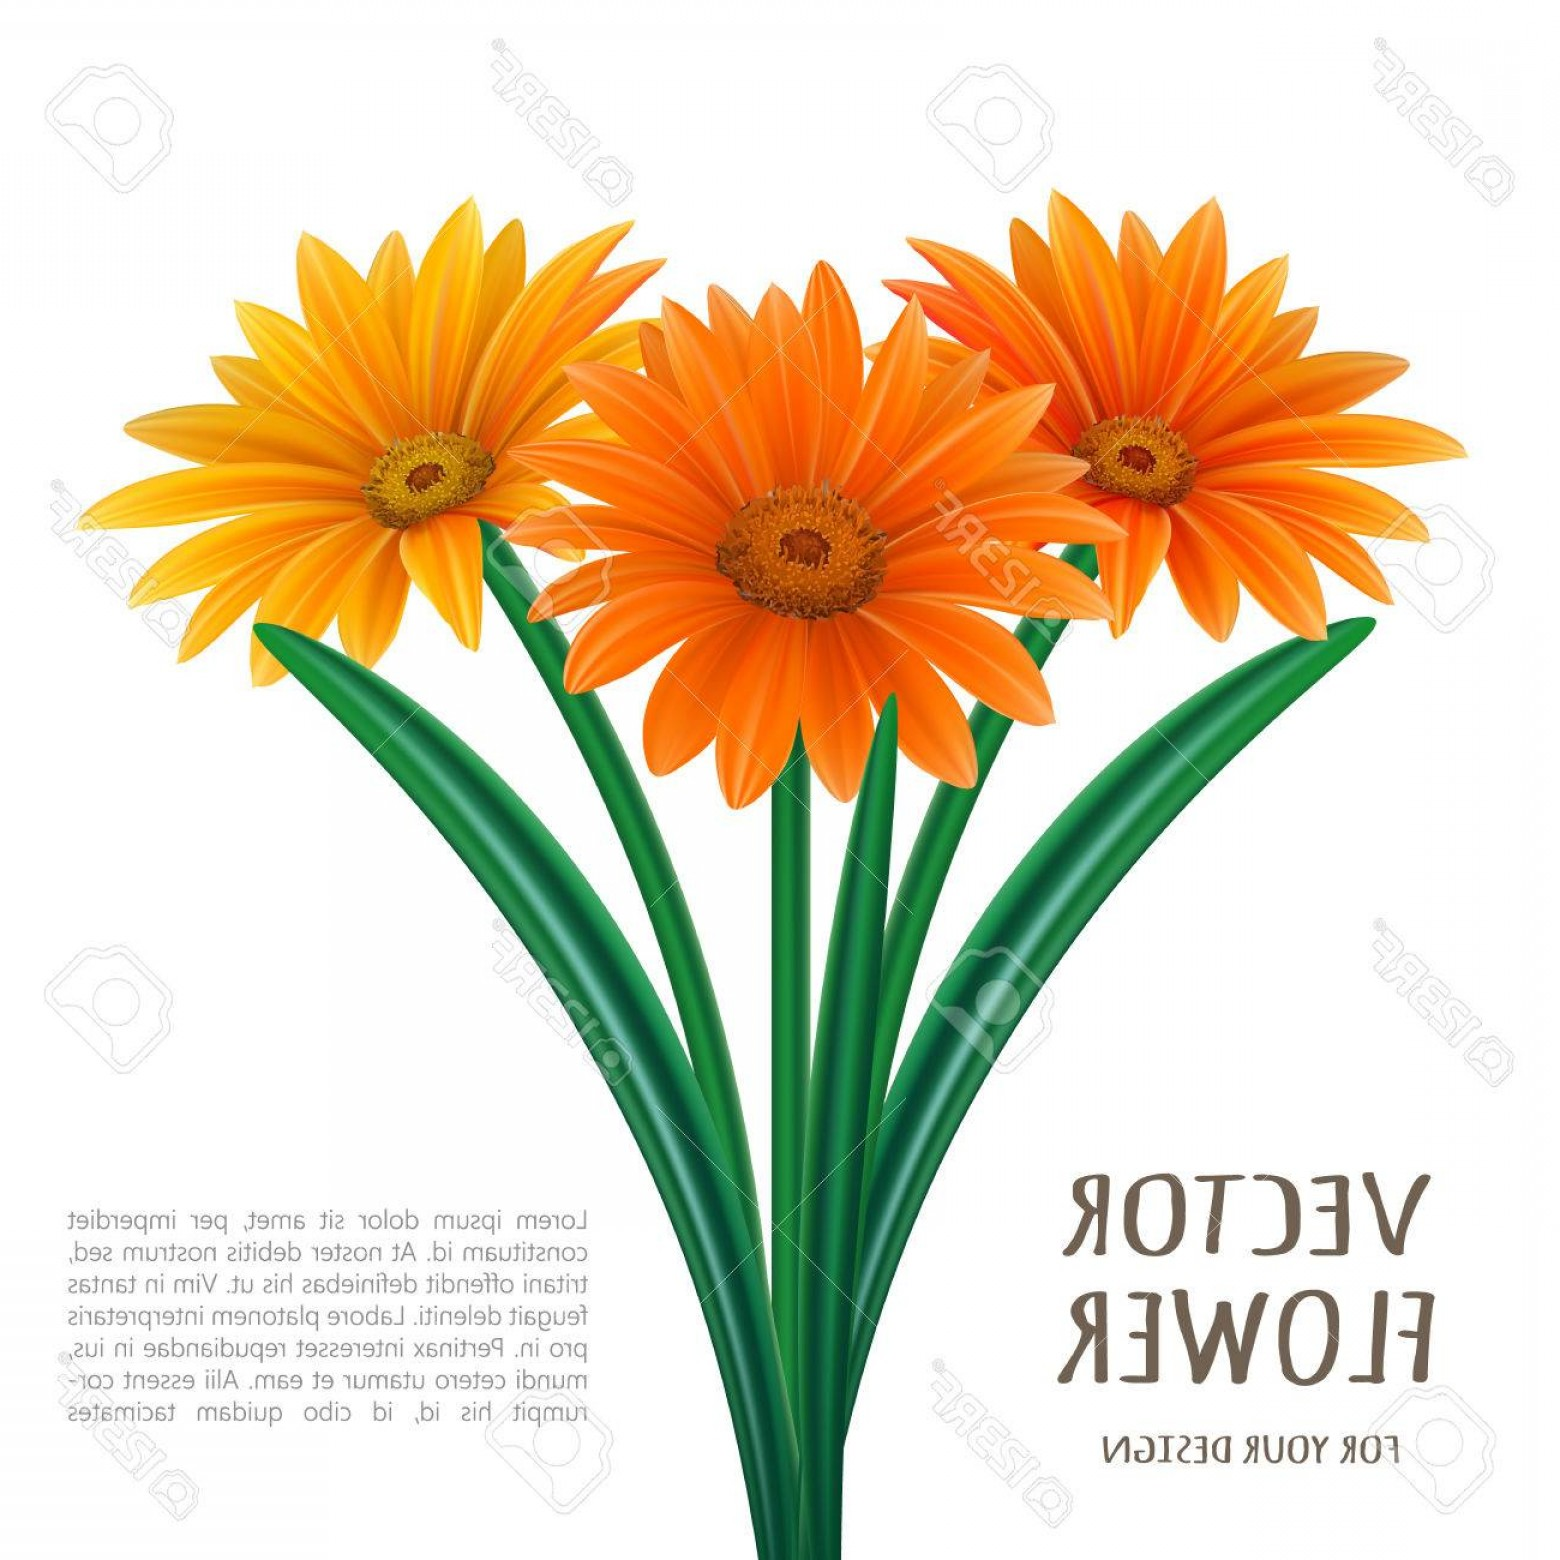 Orange Gerber Daisy Vector: Comfortable Photostock Vector Hand Drawn Vector Realistic Illustration Of Gerbera Daisy Flower